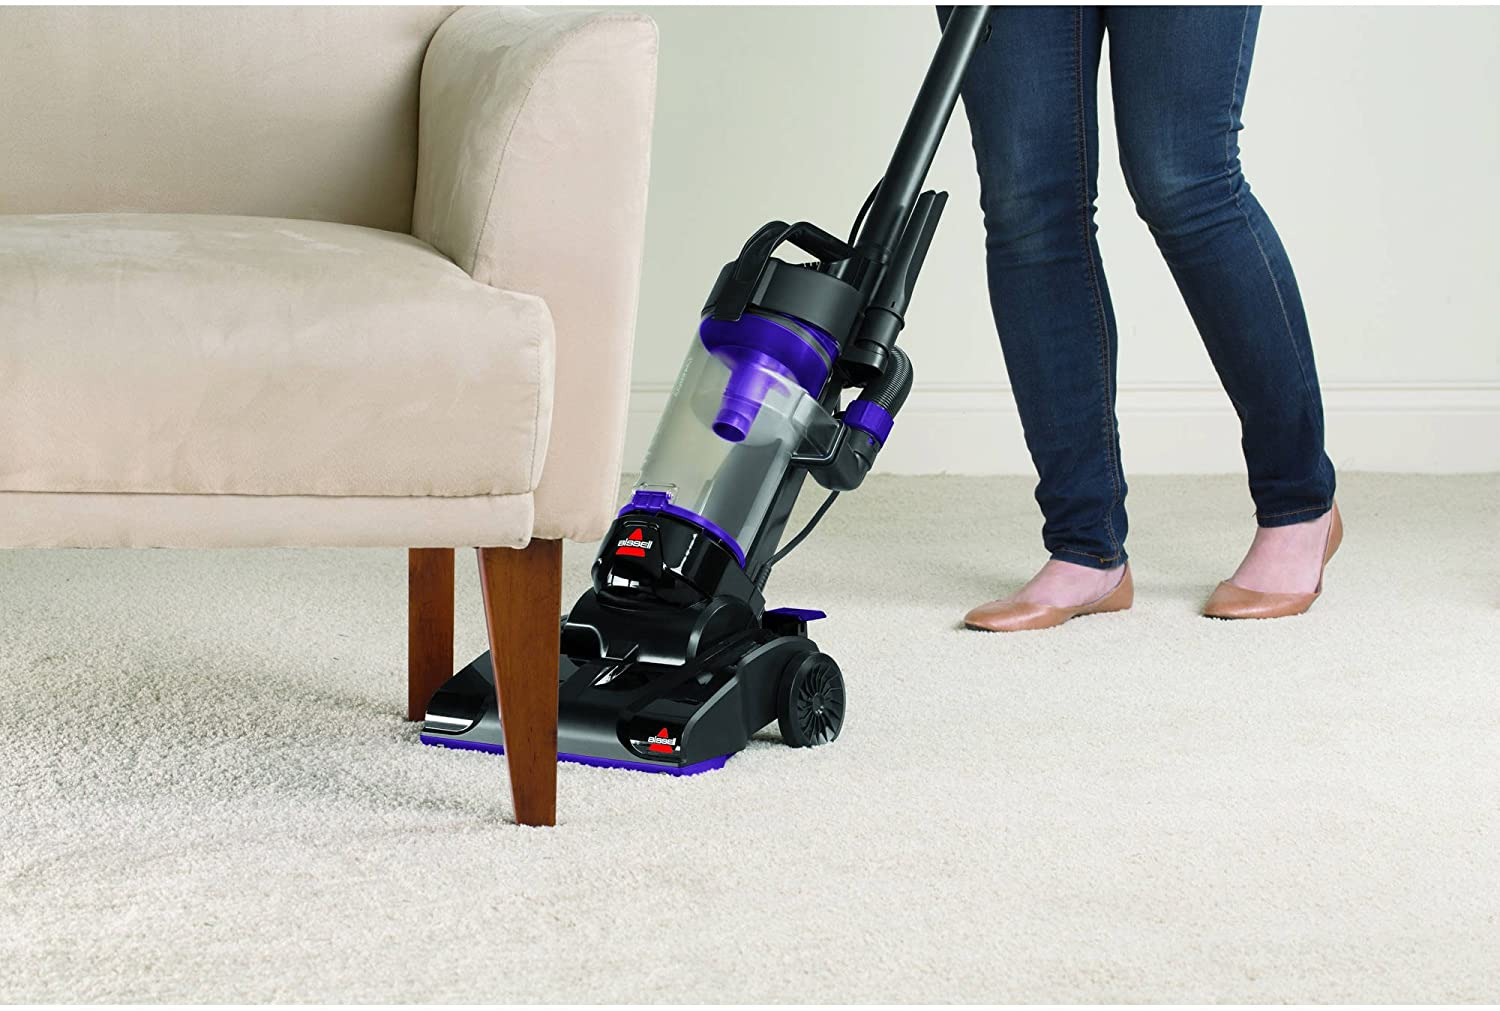 2112 Multi-Surface Cleaner BISSELL PowerForce Compact Bagless Upright Vacuum